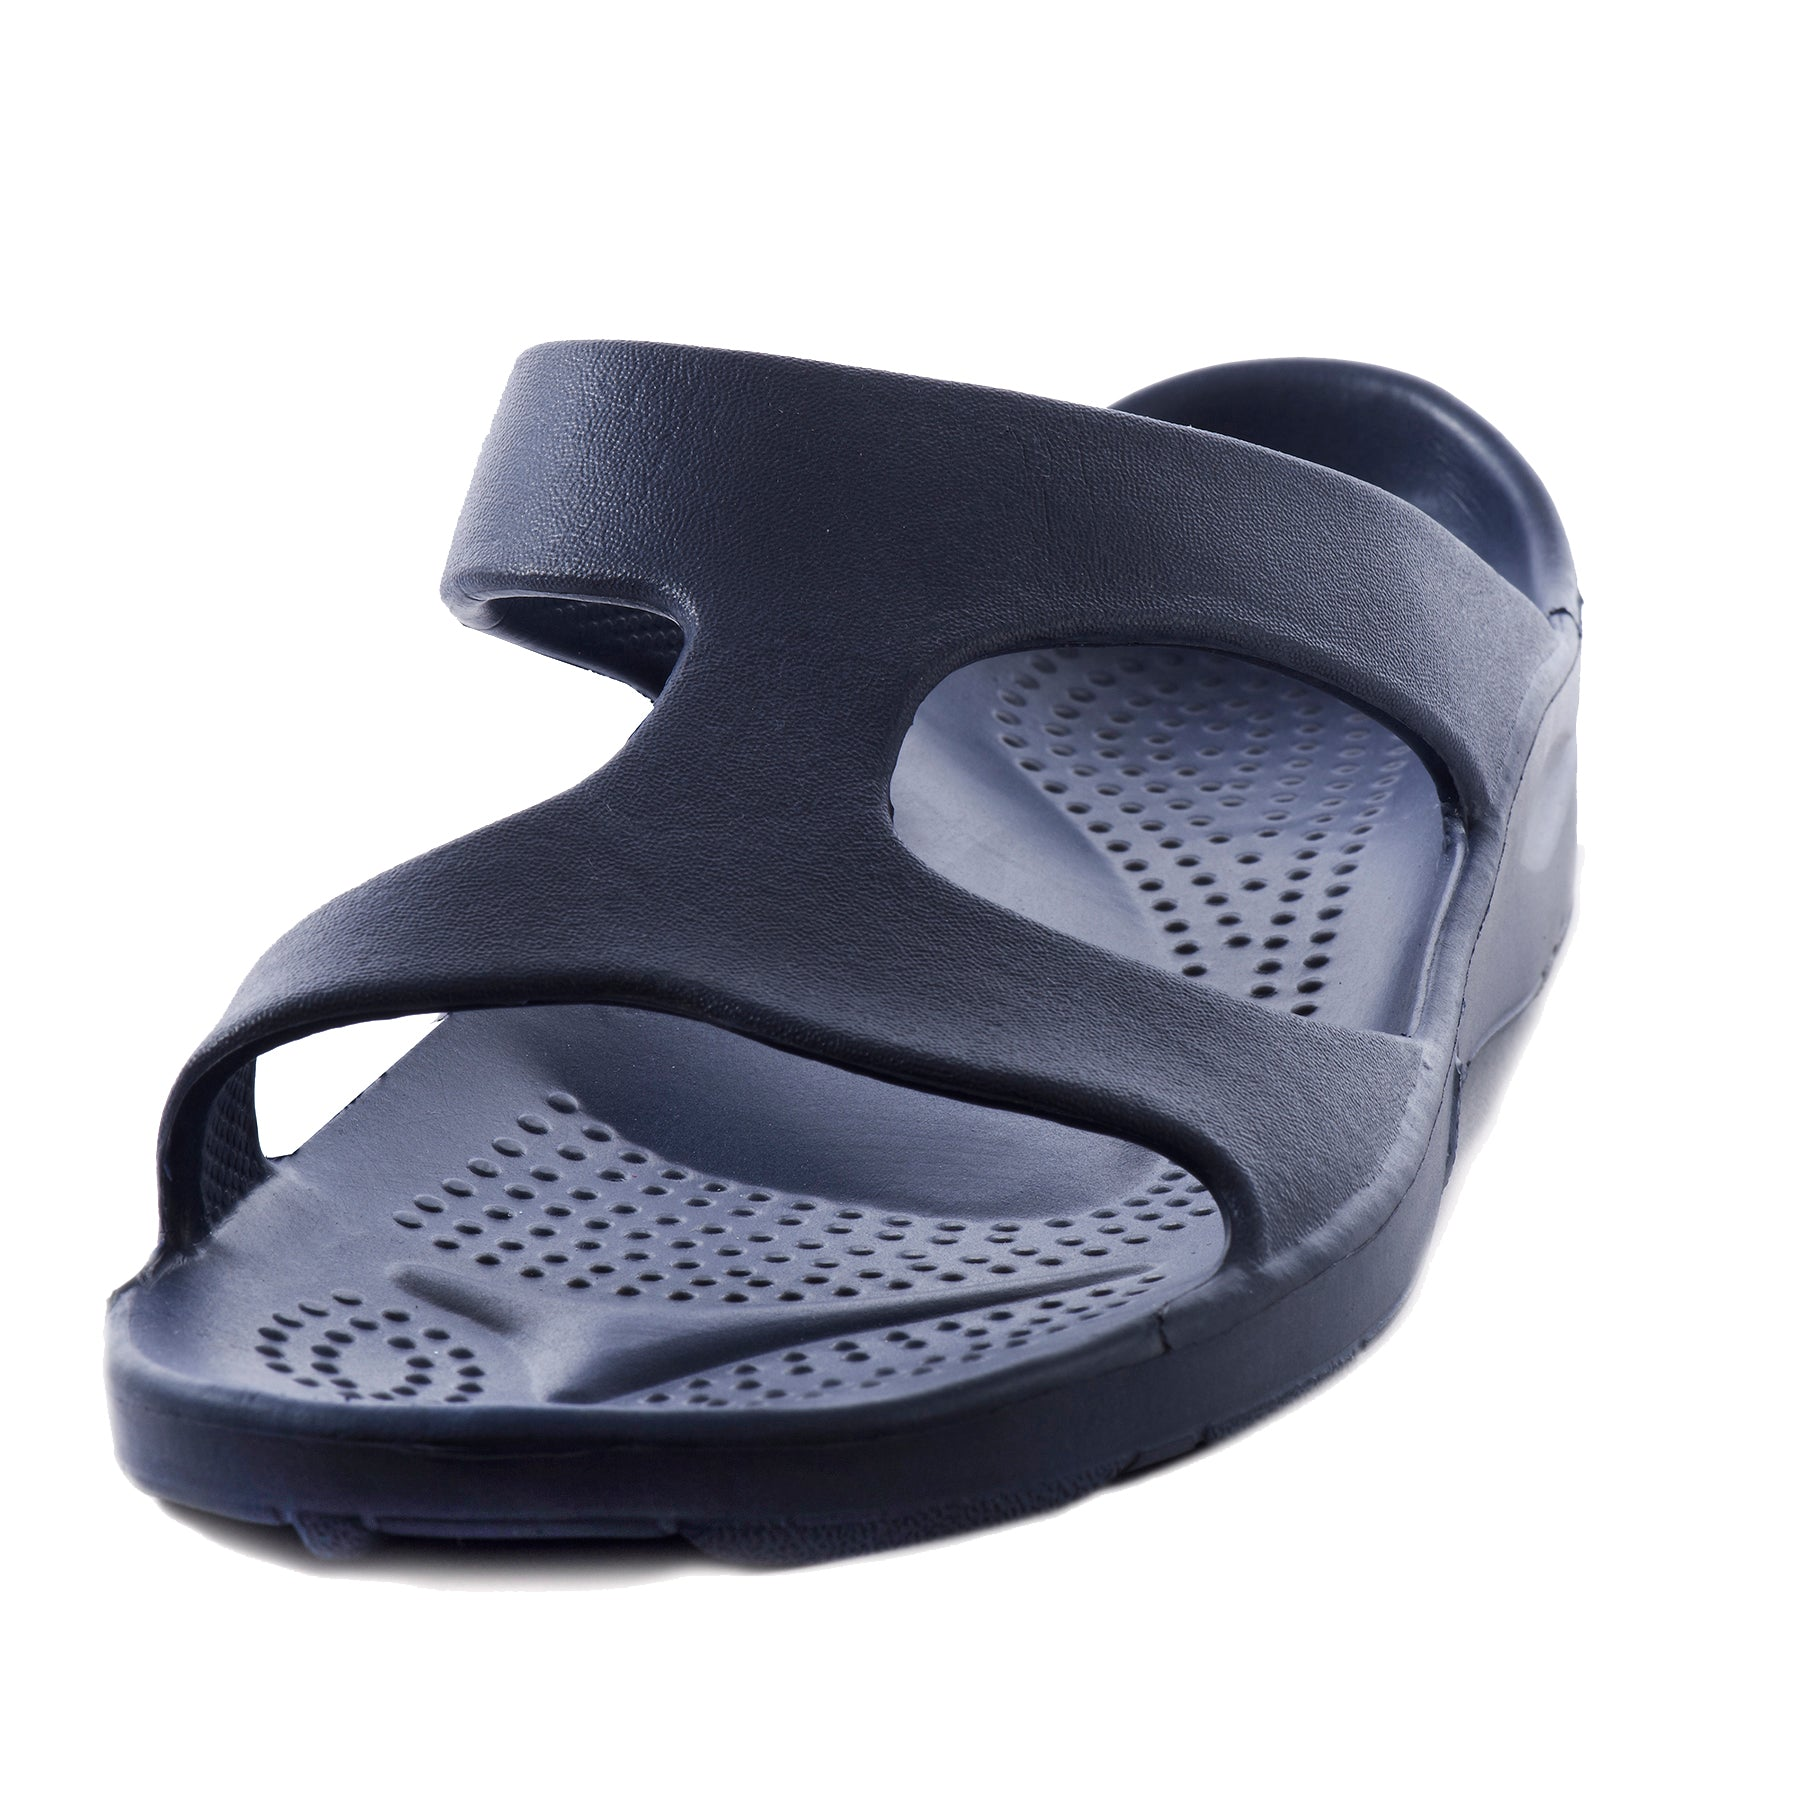 e74415ec343280 Sandals With Arch Support  Aussie Soles Indy Orthotic Slides ...